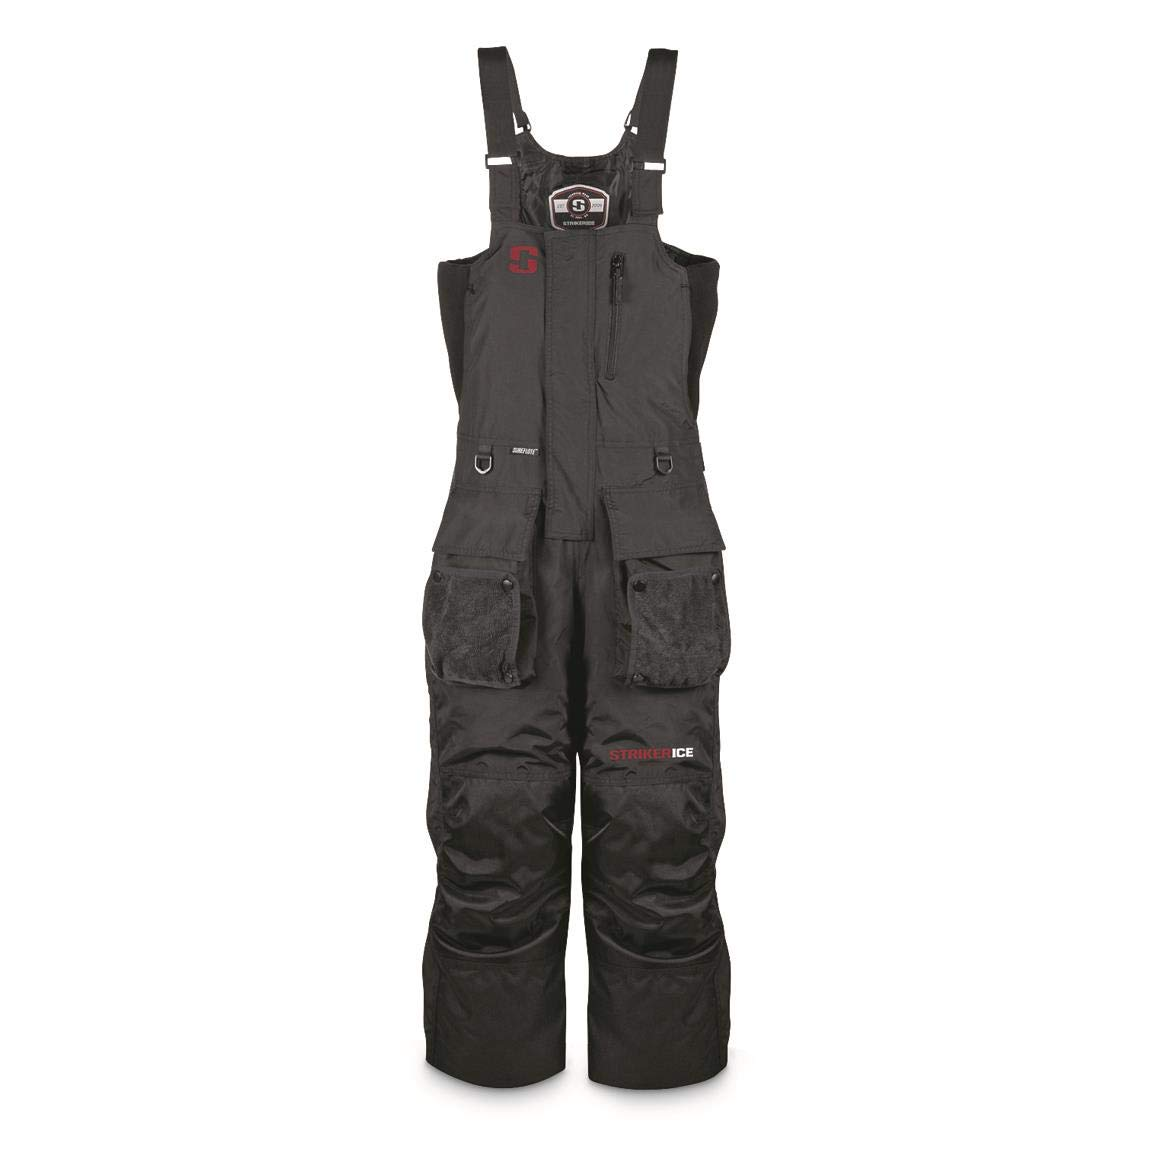 Striker Ice PANTS メンズ B07HM5L725 Small|ブラック ブラック Small